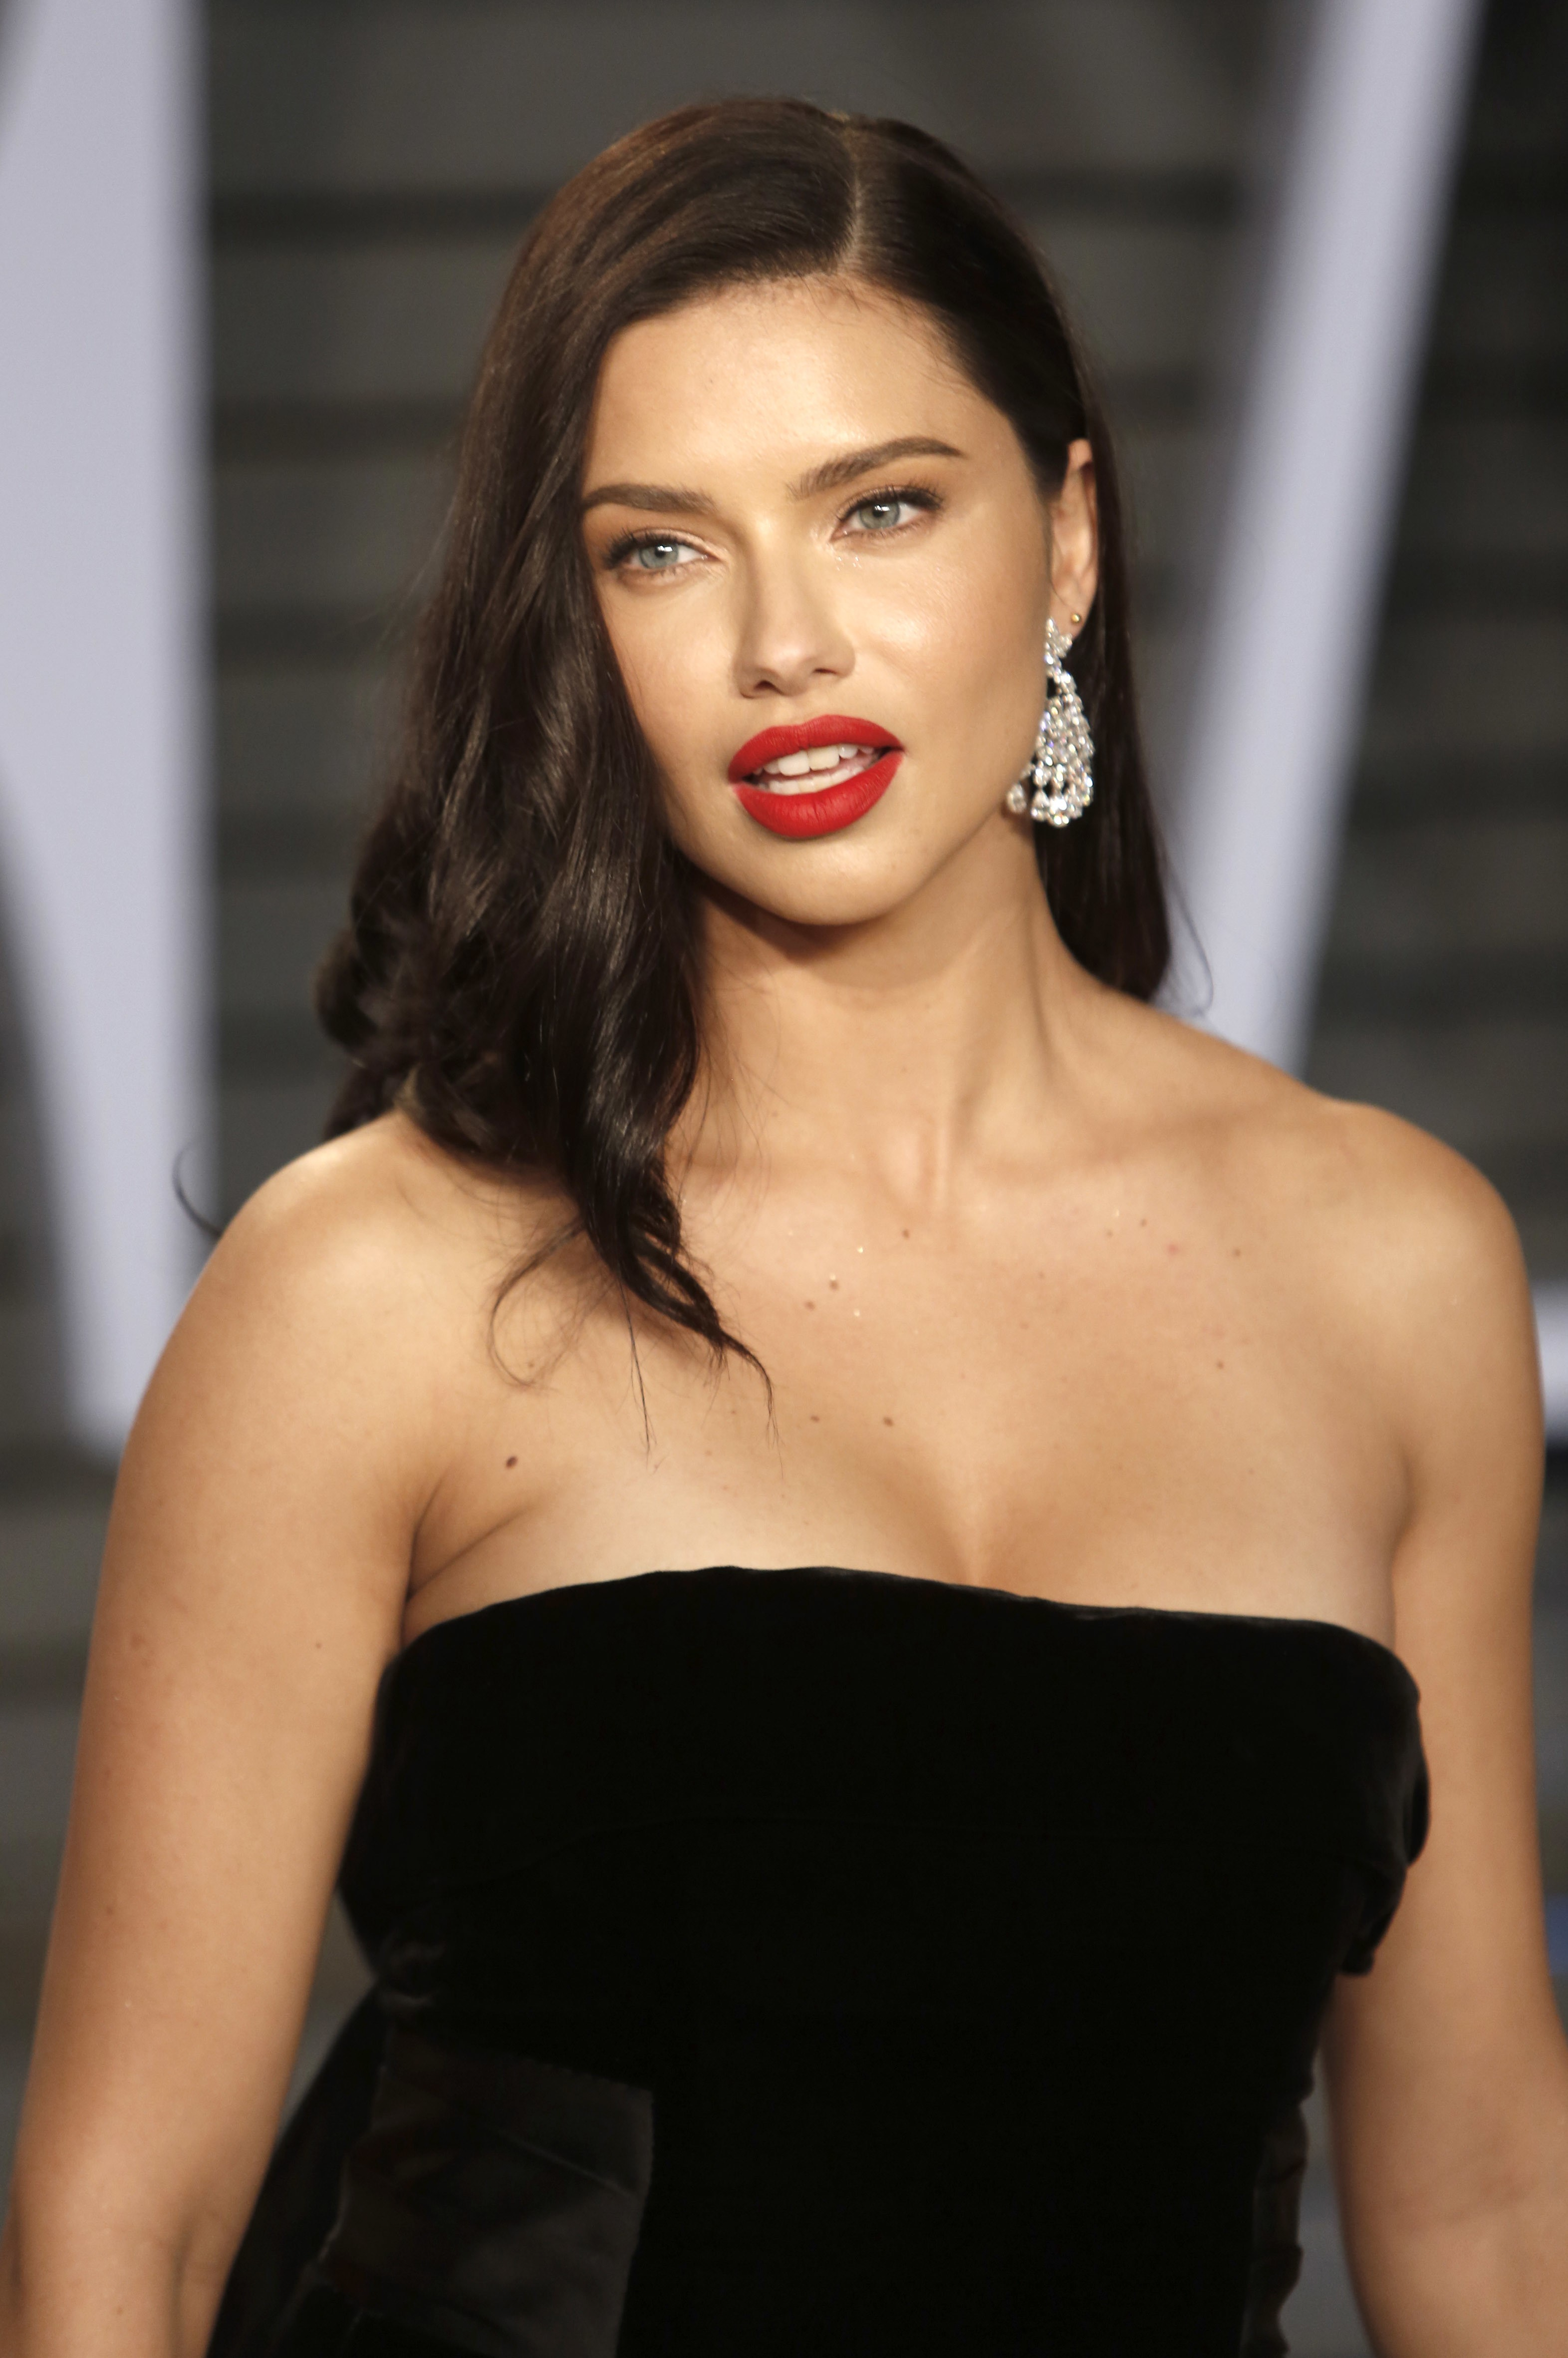 Adriana Lima at 2018 Vanity Fair Oscar Party Pictures - Sexy Actress Pictures | Hot Actress Pictures - ActressSnaps.com